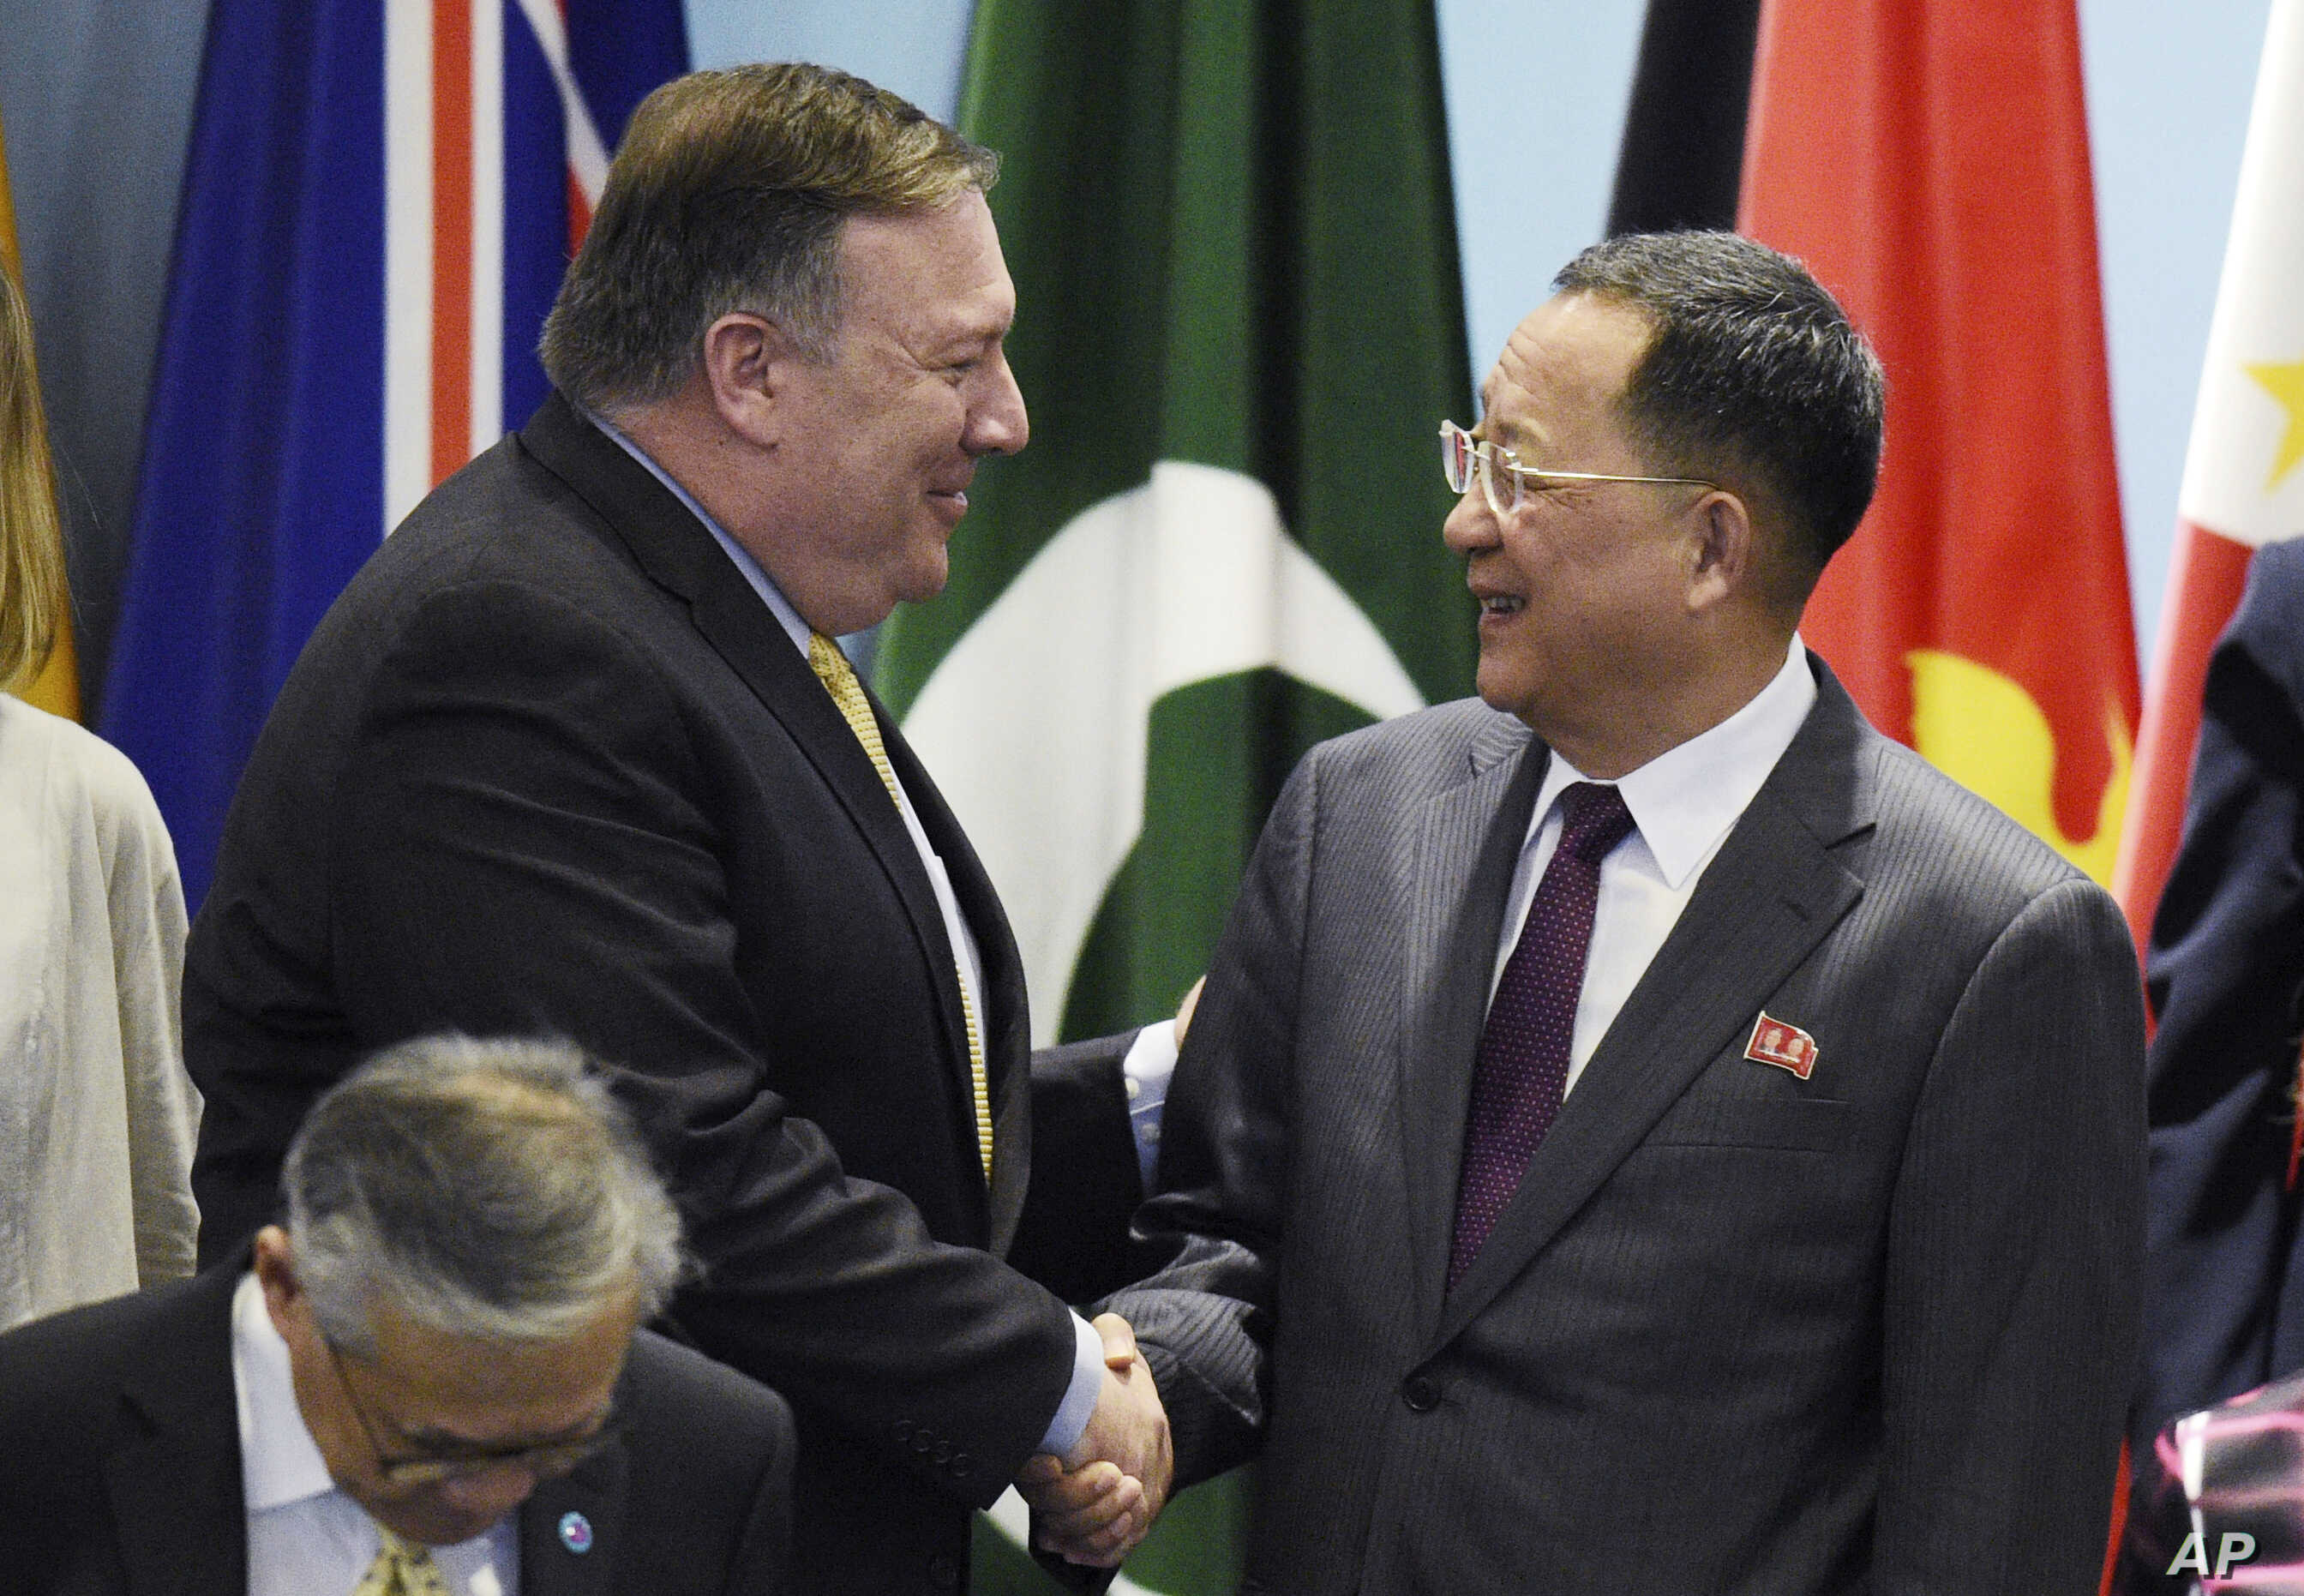 FILE - U.S. Secretary of State Mike Pompeo, left, greets North Korea's Foreign Minister Ri Yong Ho at the 25th ASEAN Regional Forum Retreat in Singapore, Aug. 4, 2018. President Donald Trump on Aug. 24 called off a visit to North Korea by Pompeo  becau...